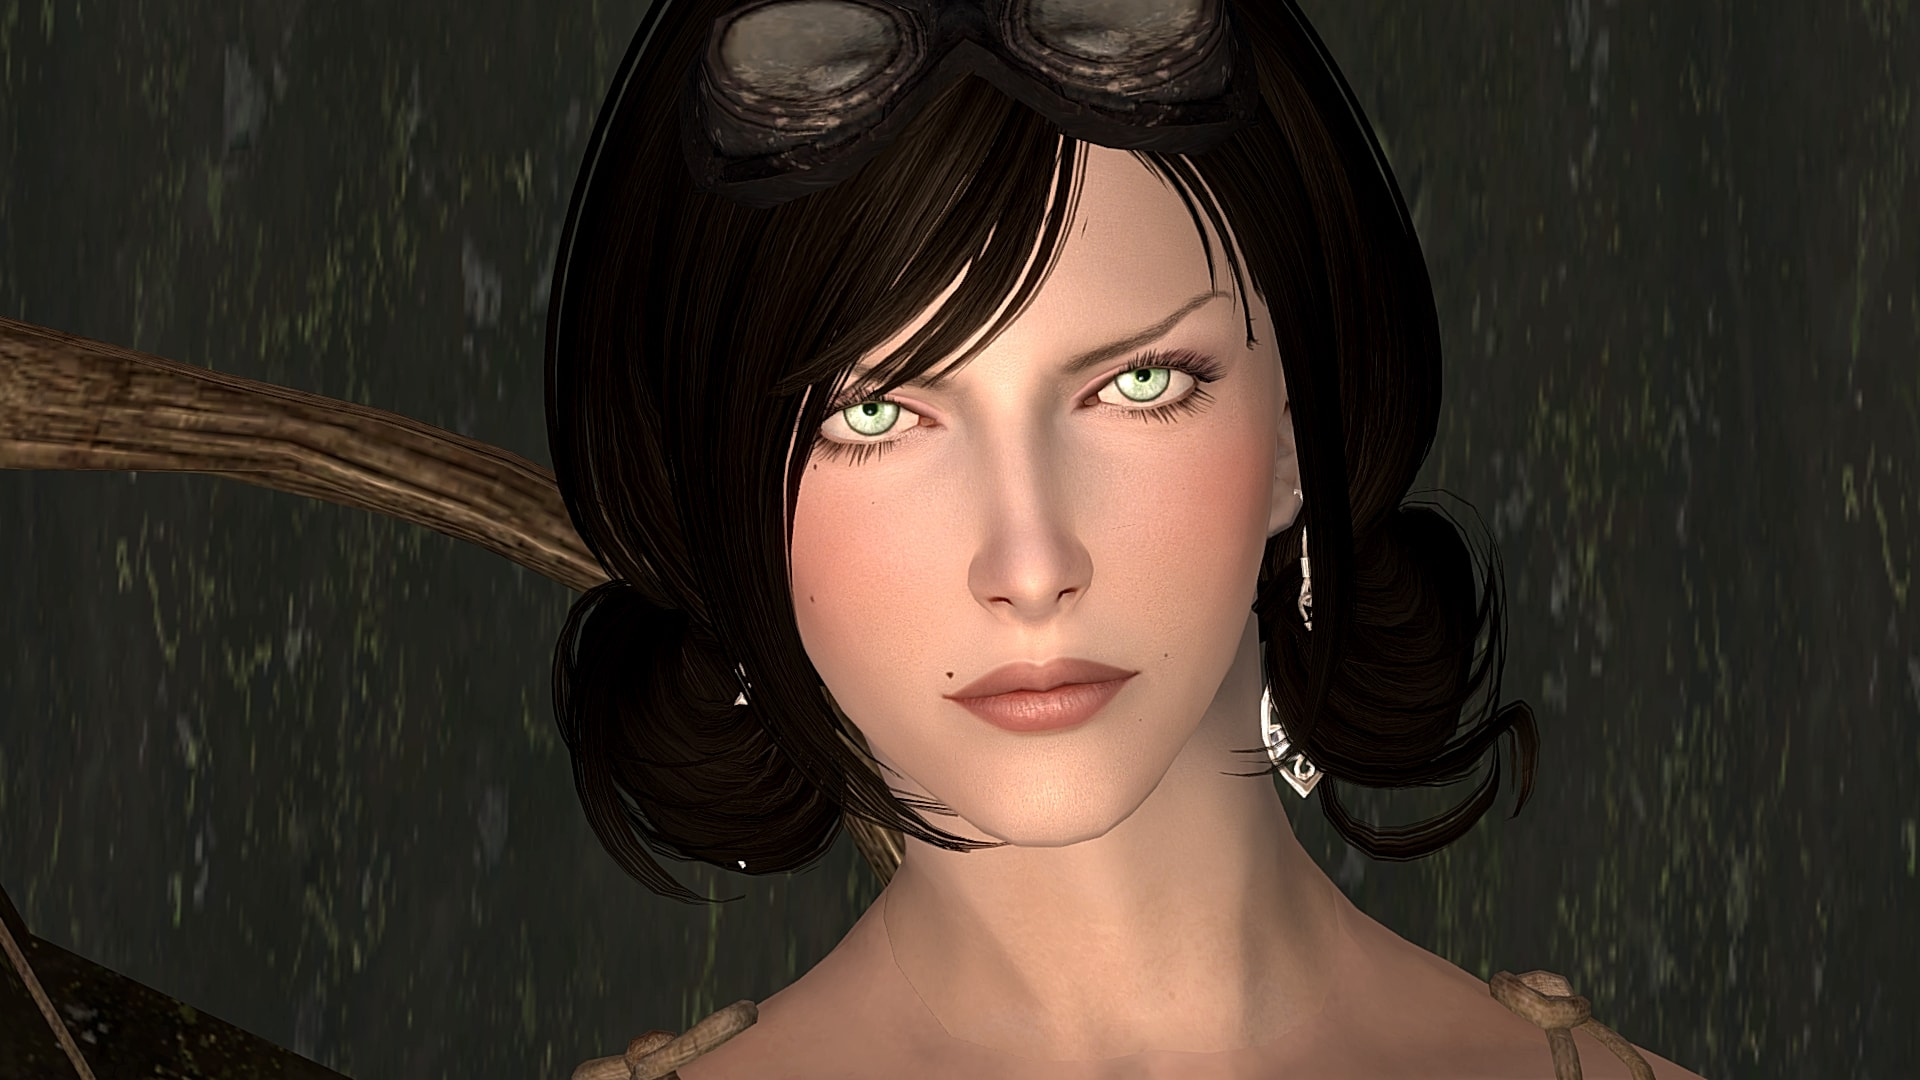 female_facial_animation skyrim